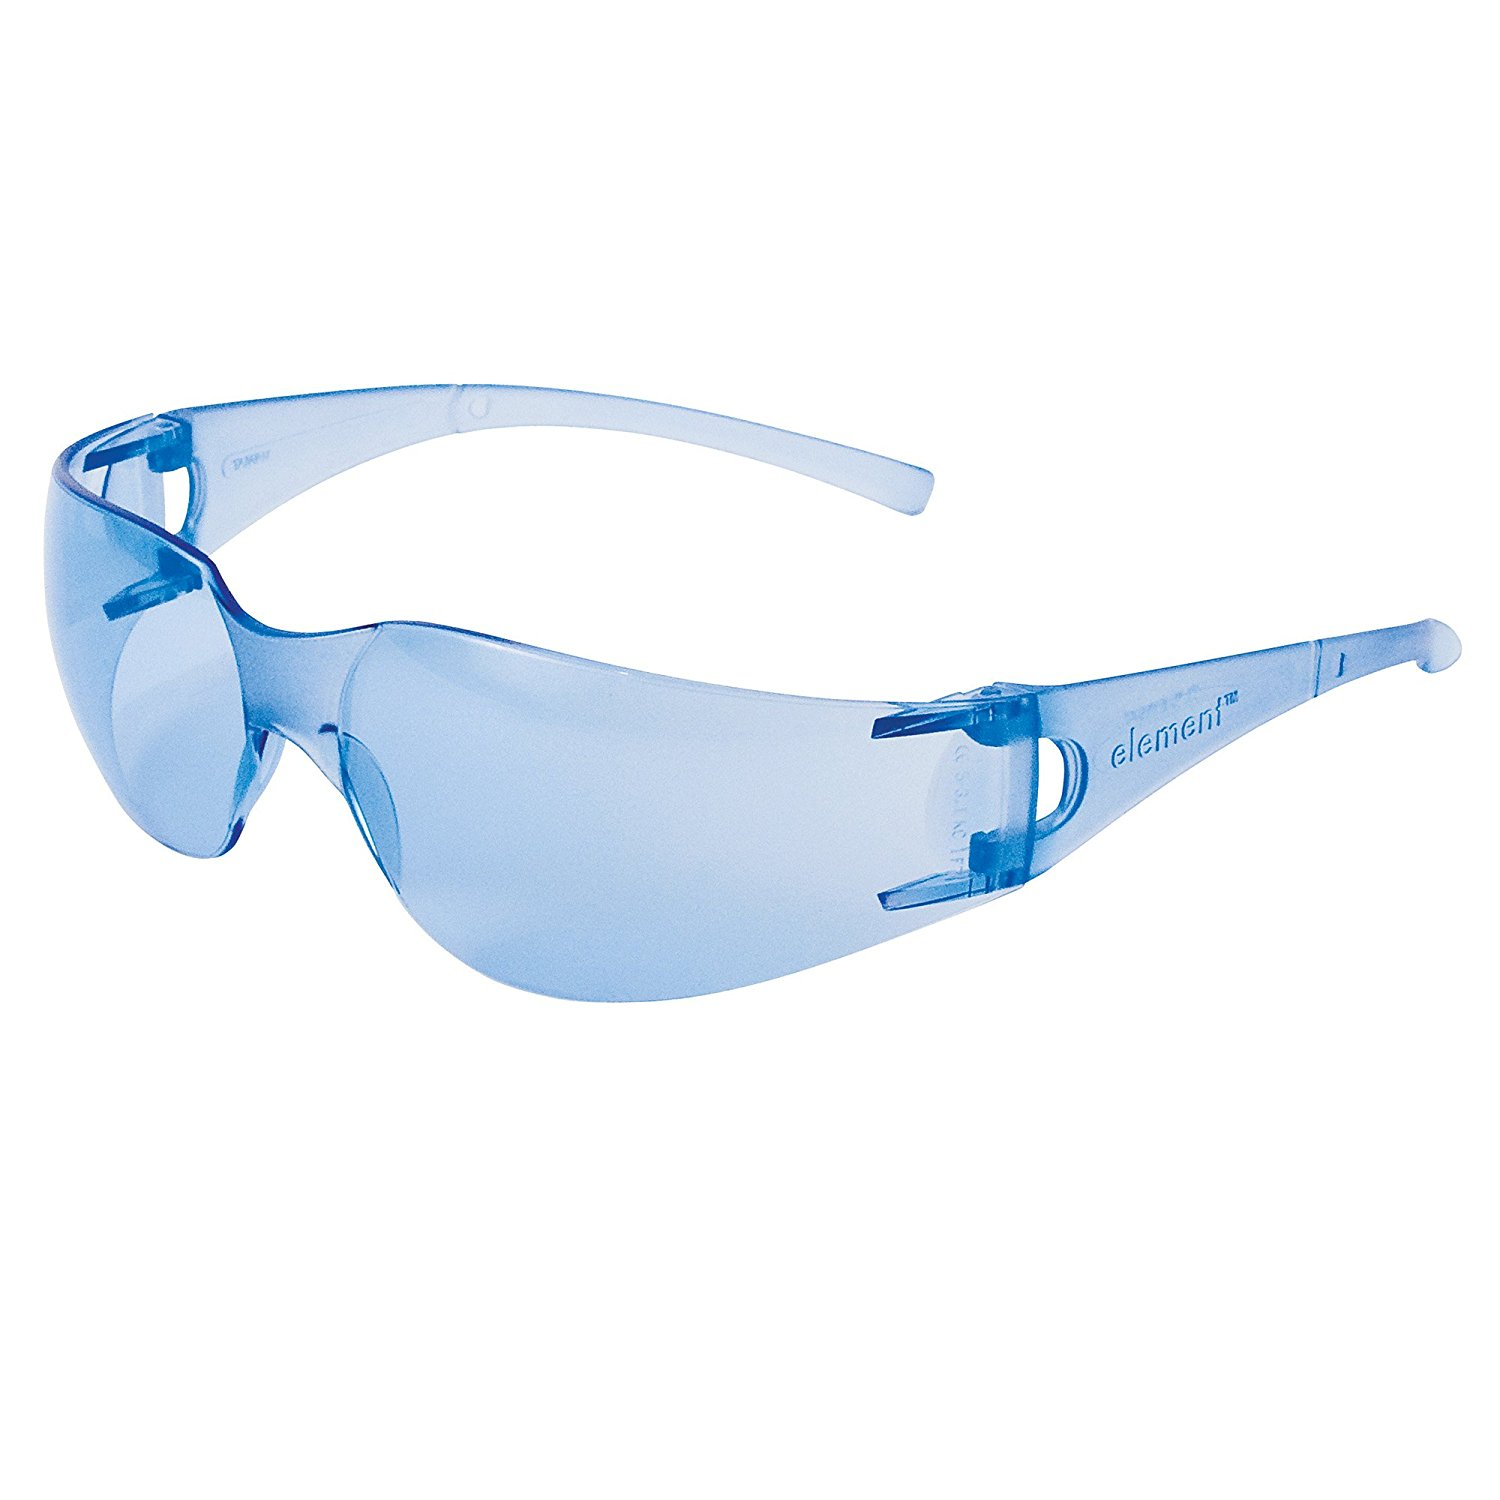 509bdf766e Get Quotations · Jackson Safety 33072 V10 Element Safety Glasses, Light  Blue Lenses with Light Blue Temples (